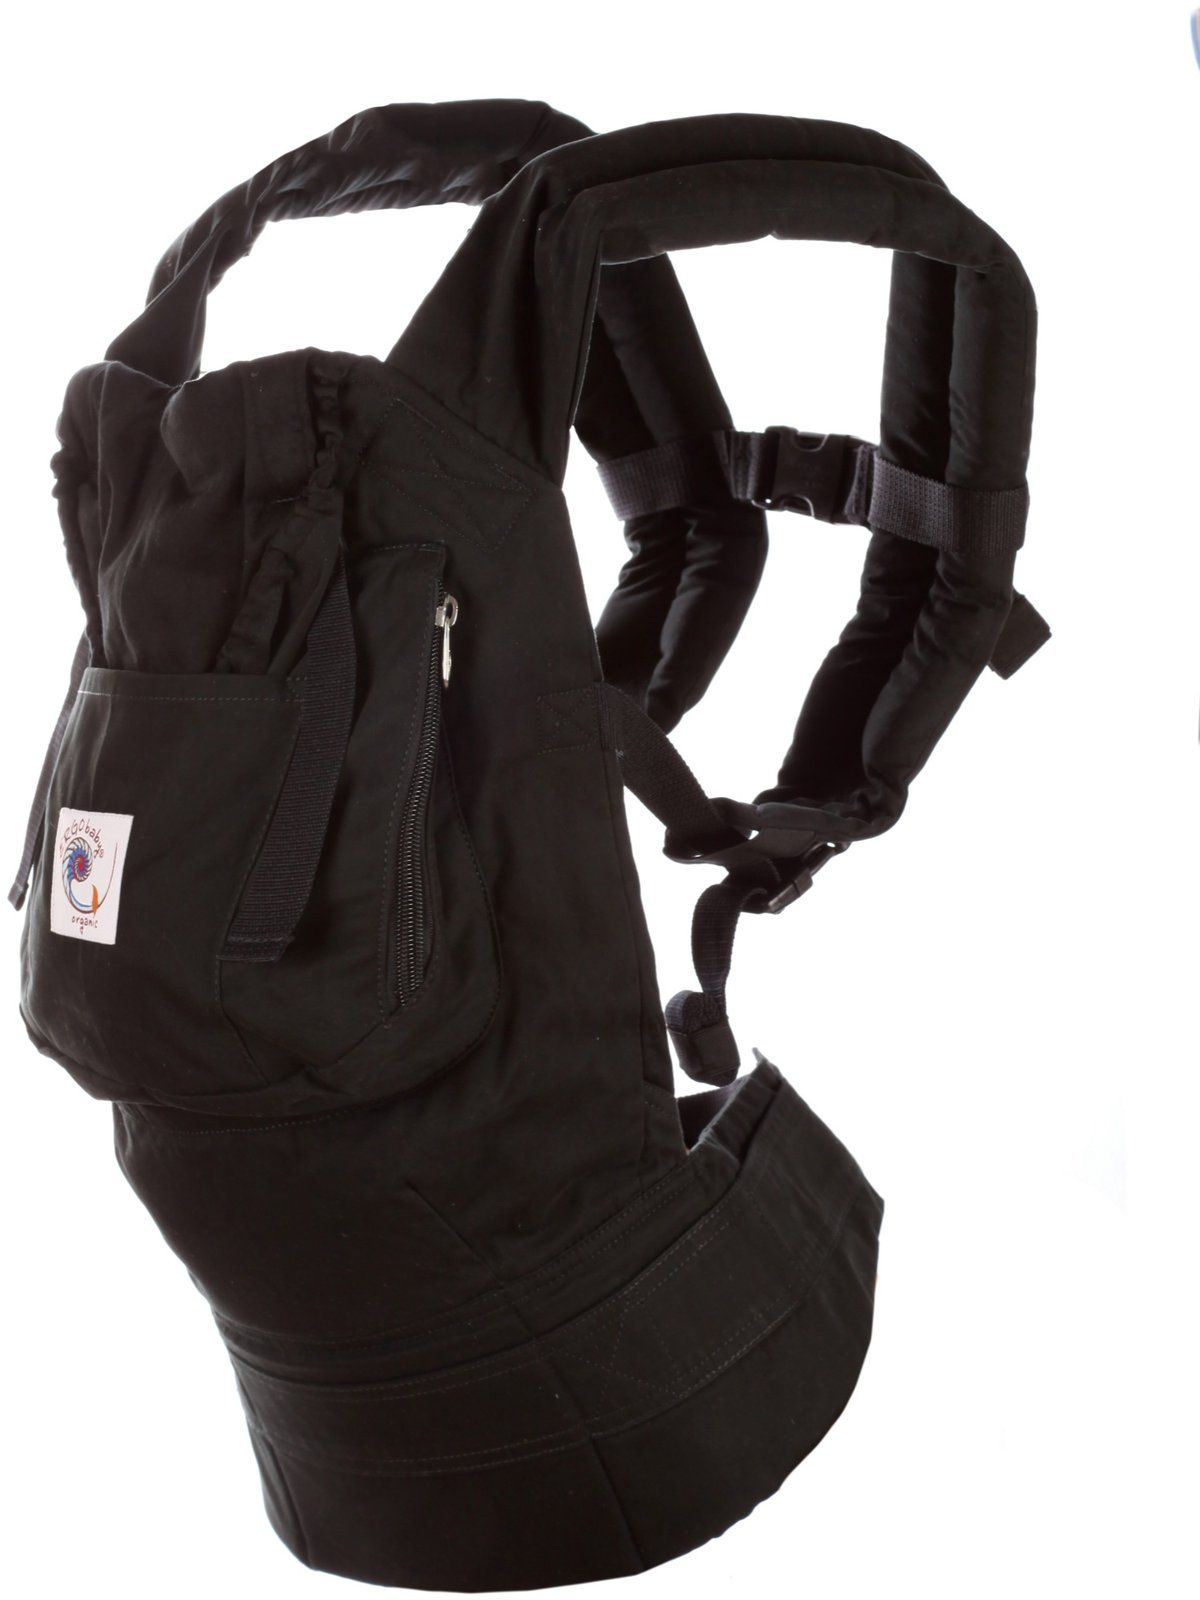 Ergobaby Organic Baby Carrier Also Available In Non Organic For A Less Expensive Option This Works For All Carrying Positions Front Back And Hip You Will